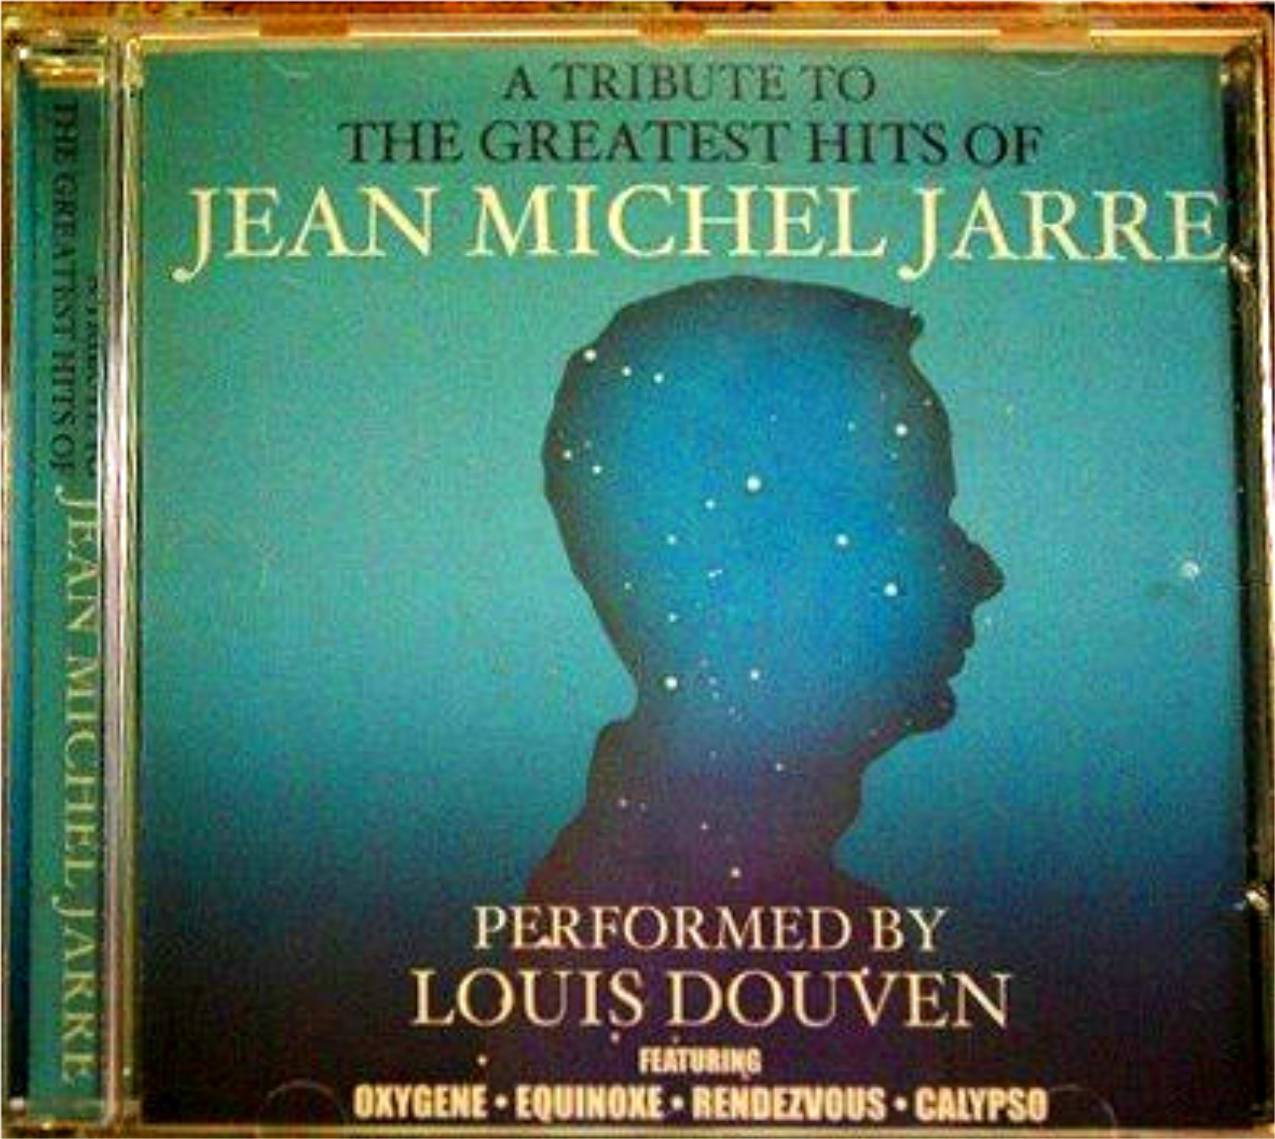 The Greatest Hits of Jean Michel Jarre